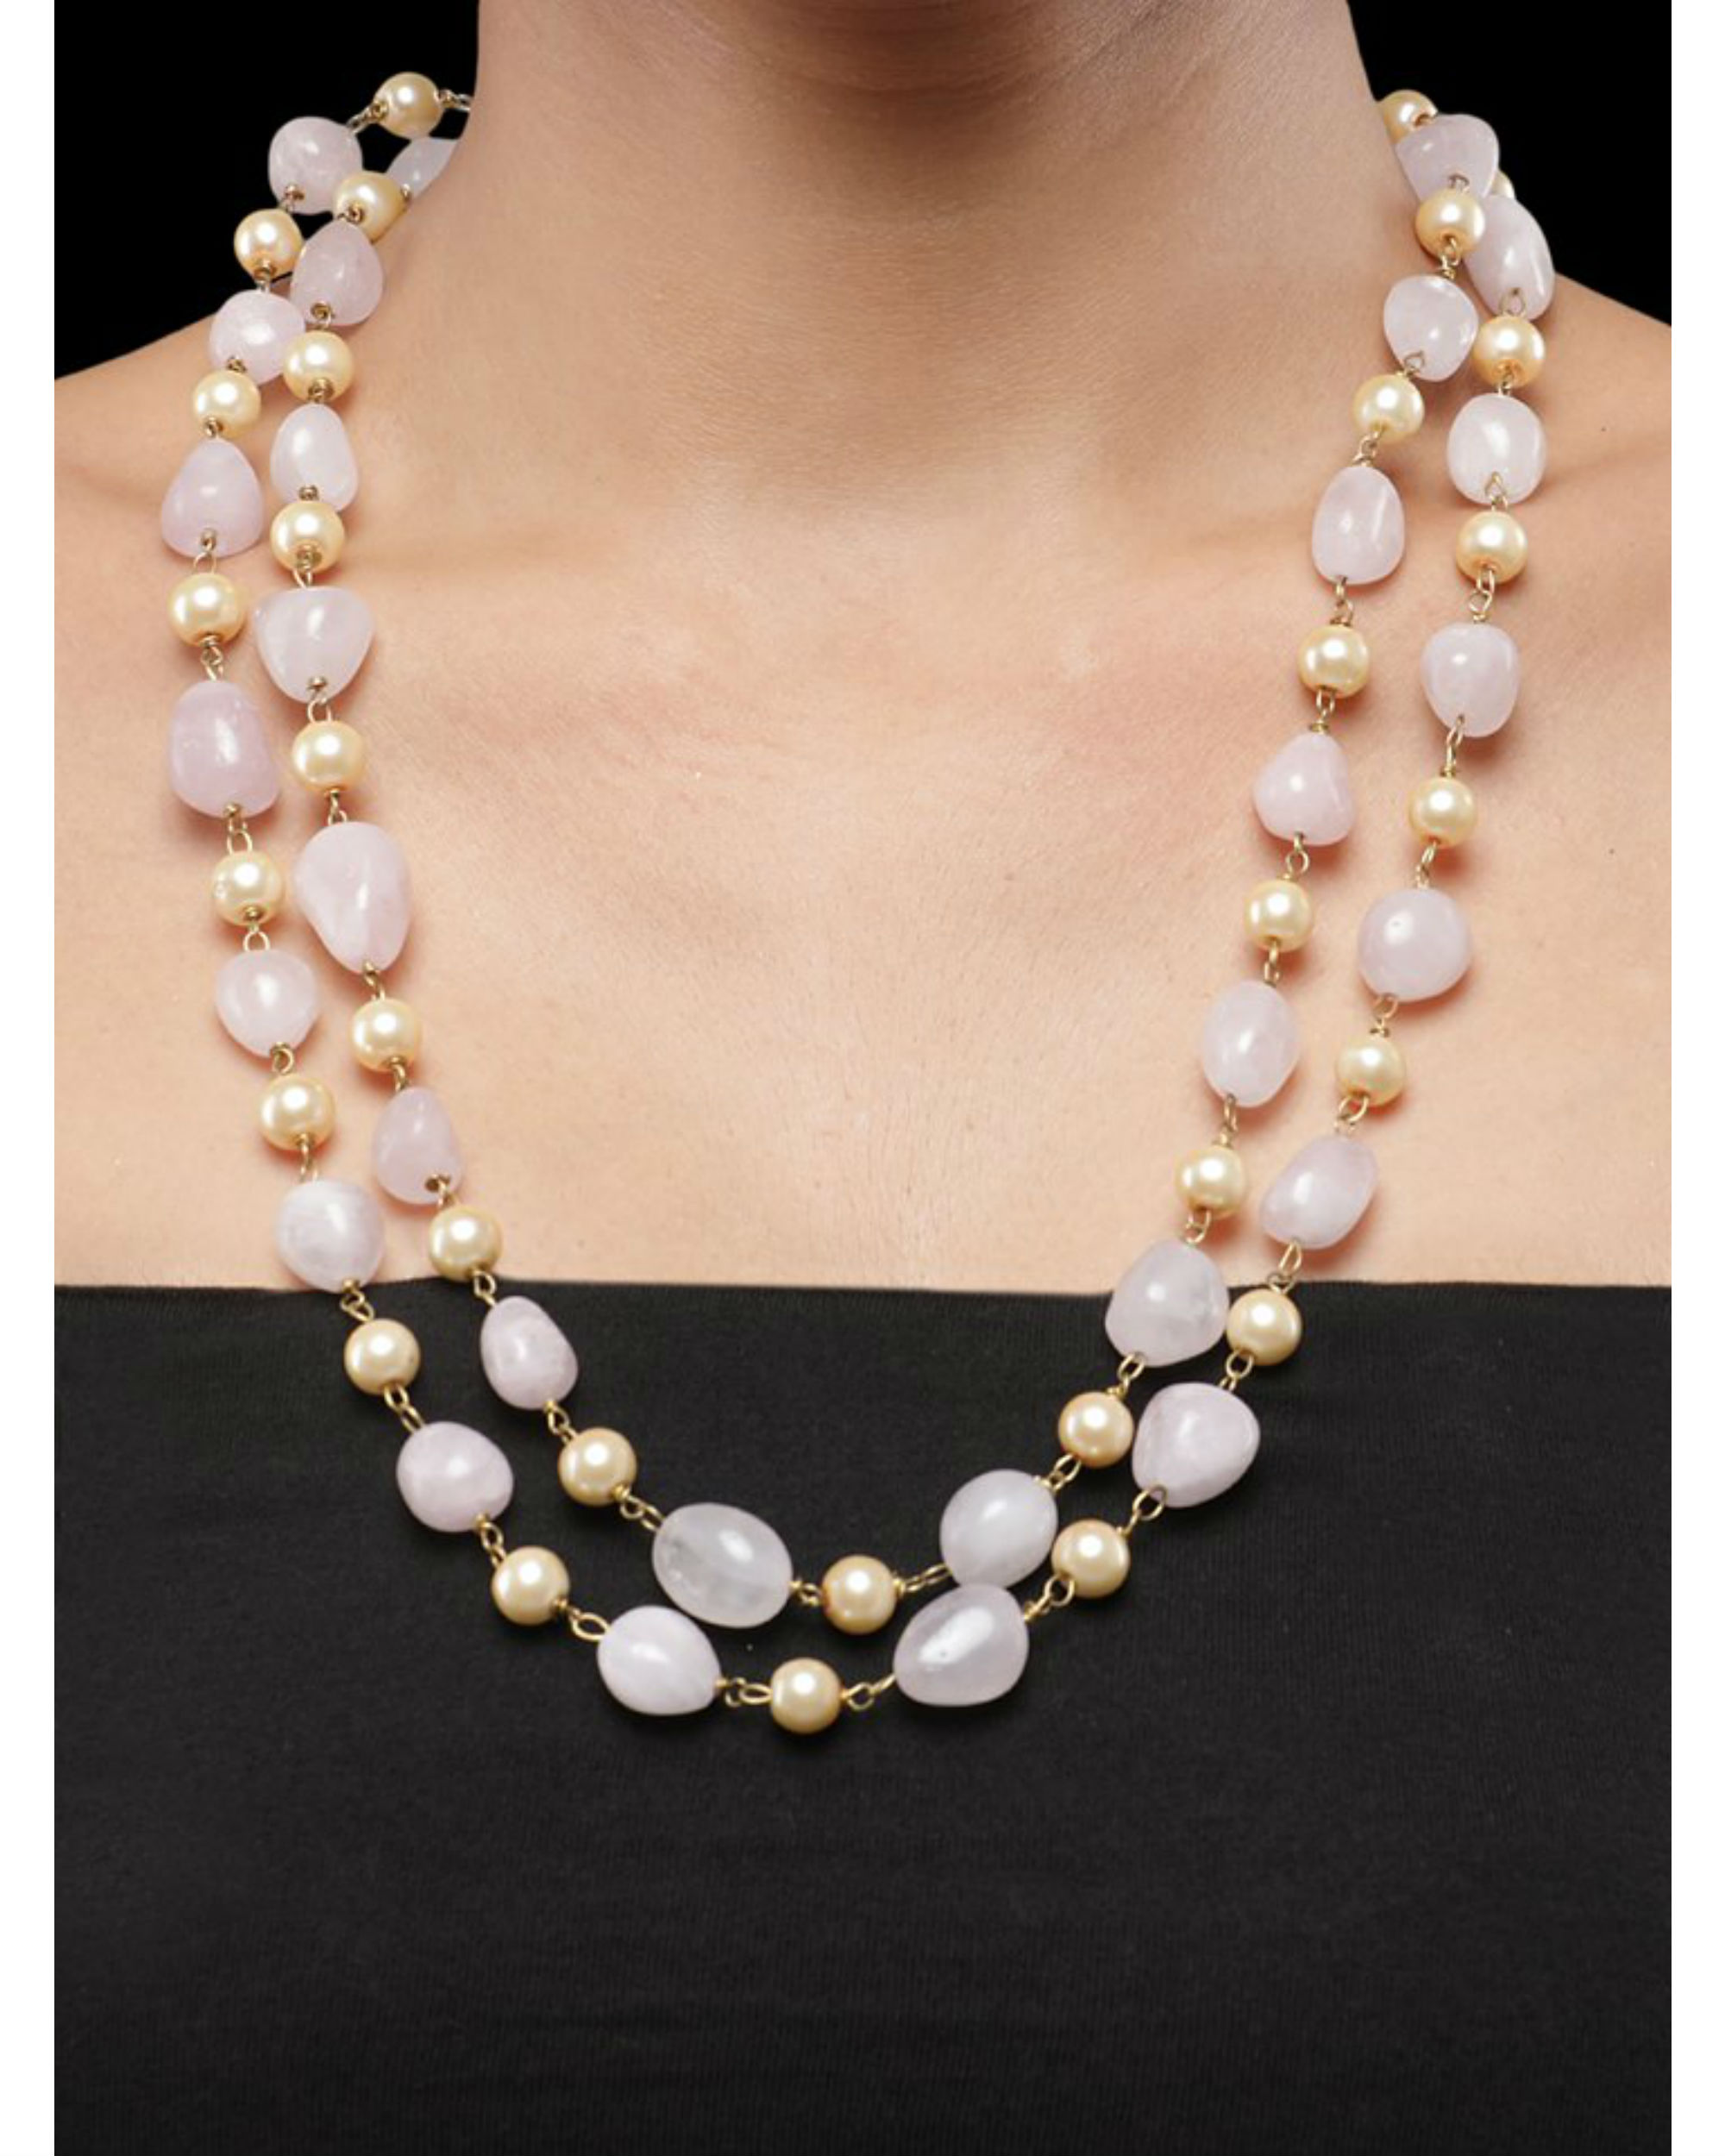 alan zoom necklaces hannah freshwater pink jewellery devoted crystal necklace gold pearl blossom